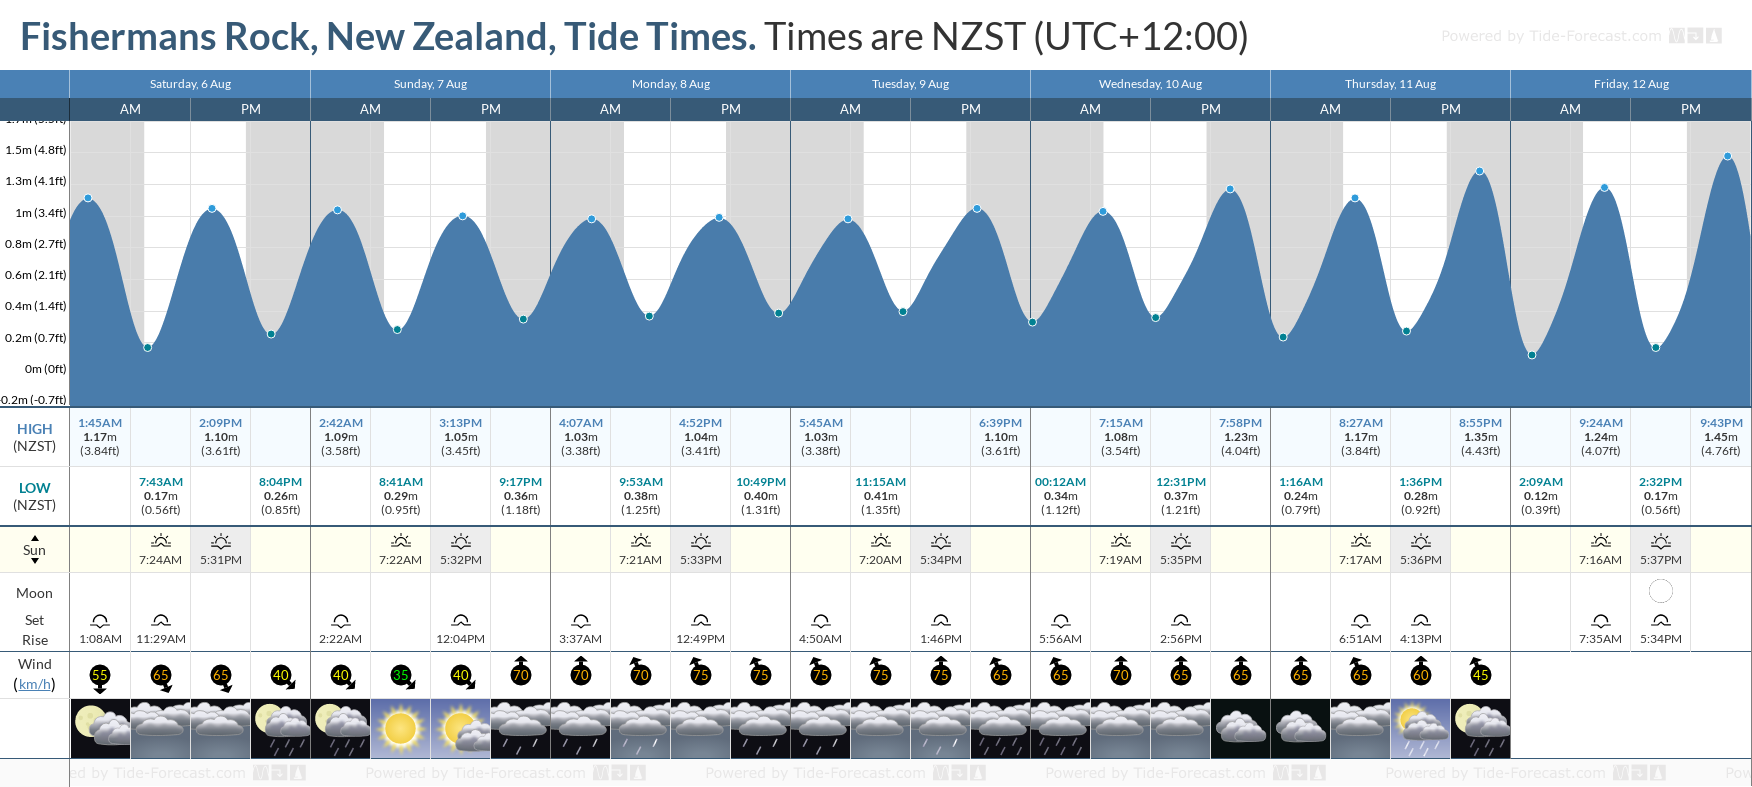 Fishermans Rock, New Zealand Tide Chart including high and low tide tide times for the next 7 days